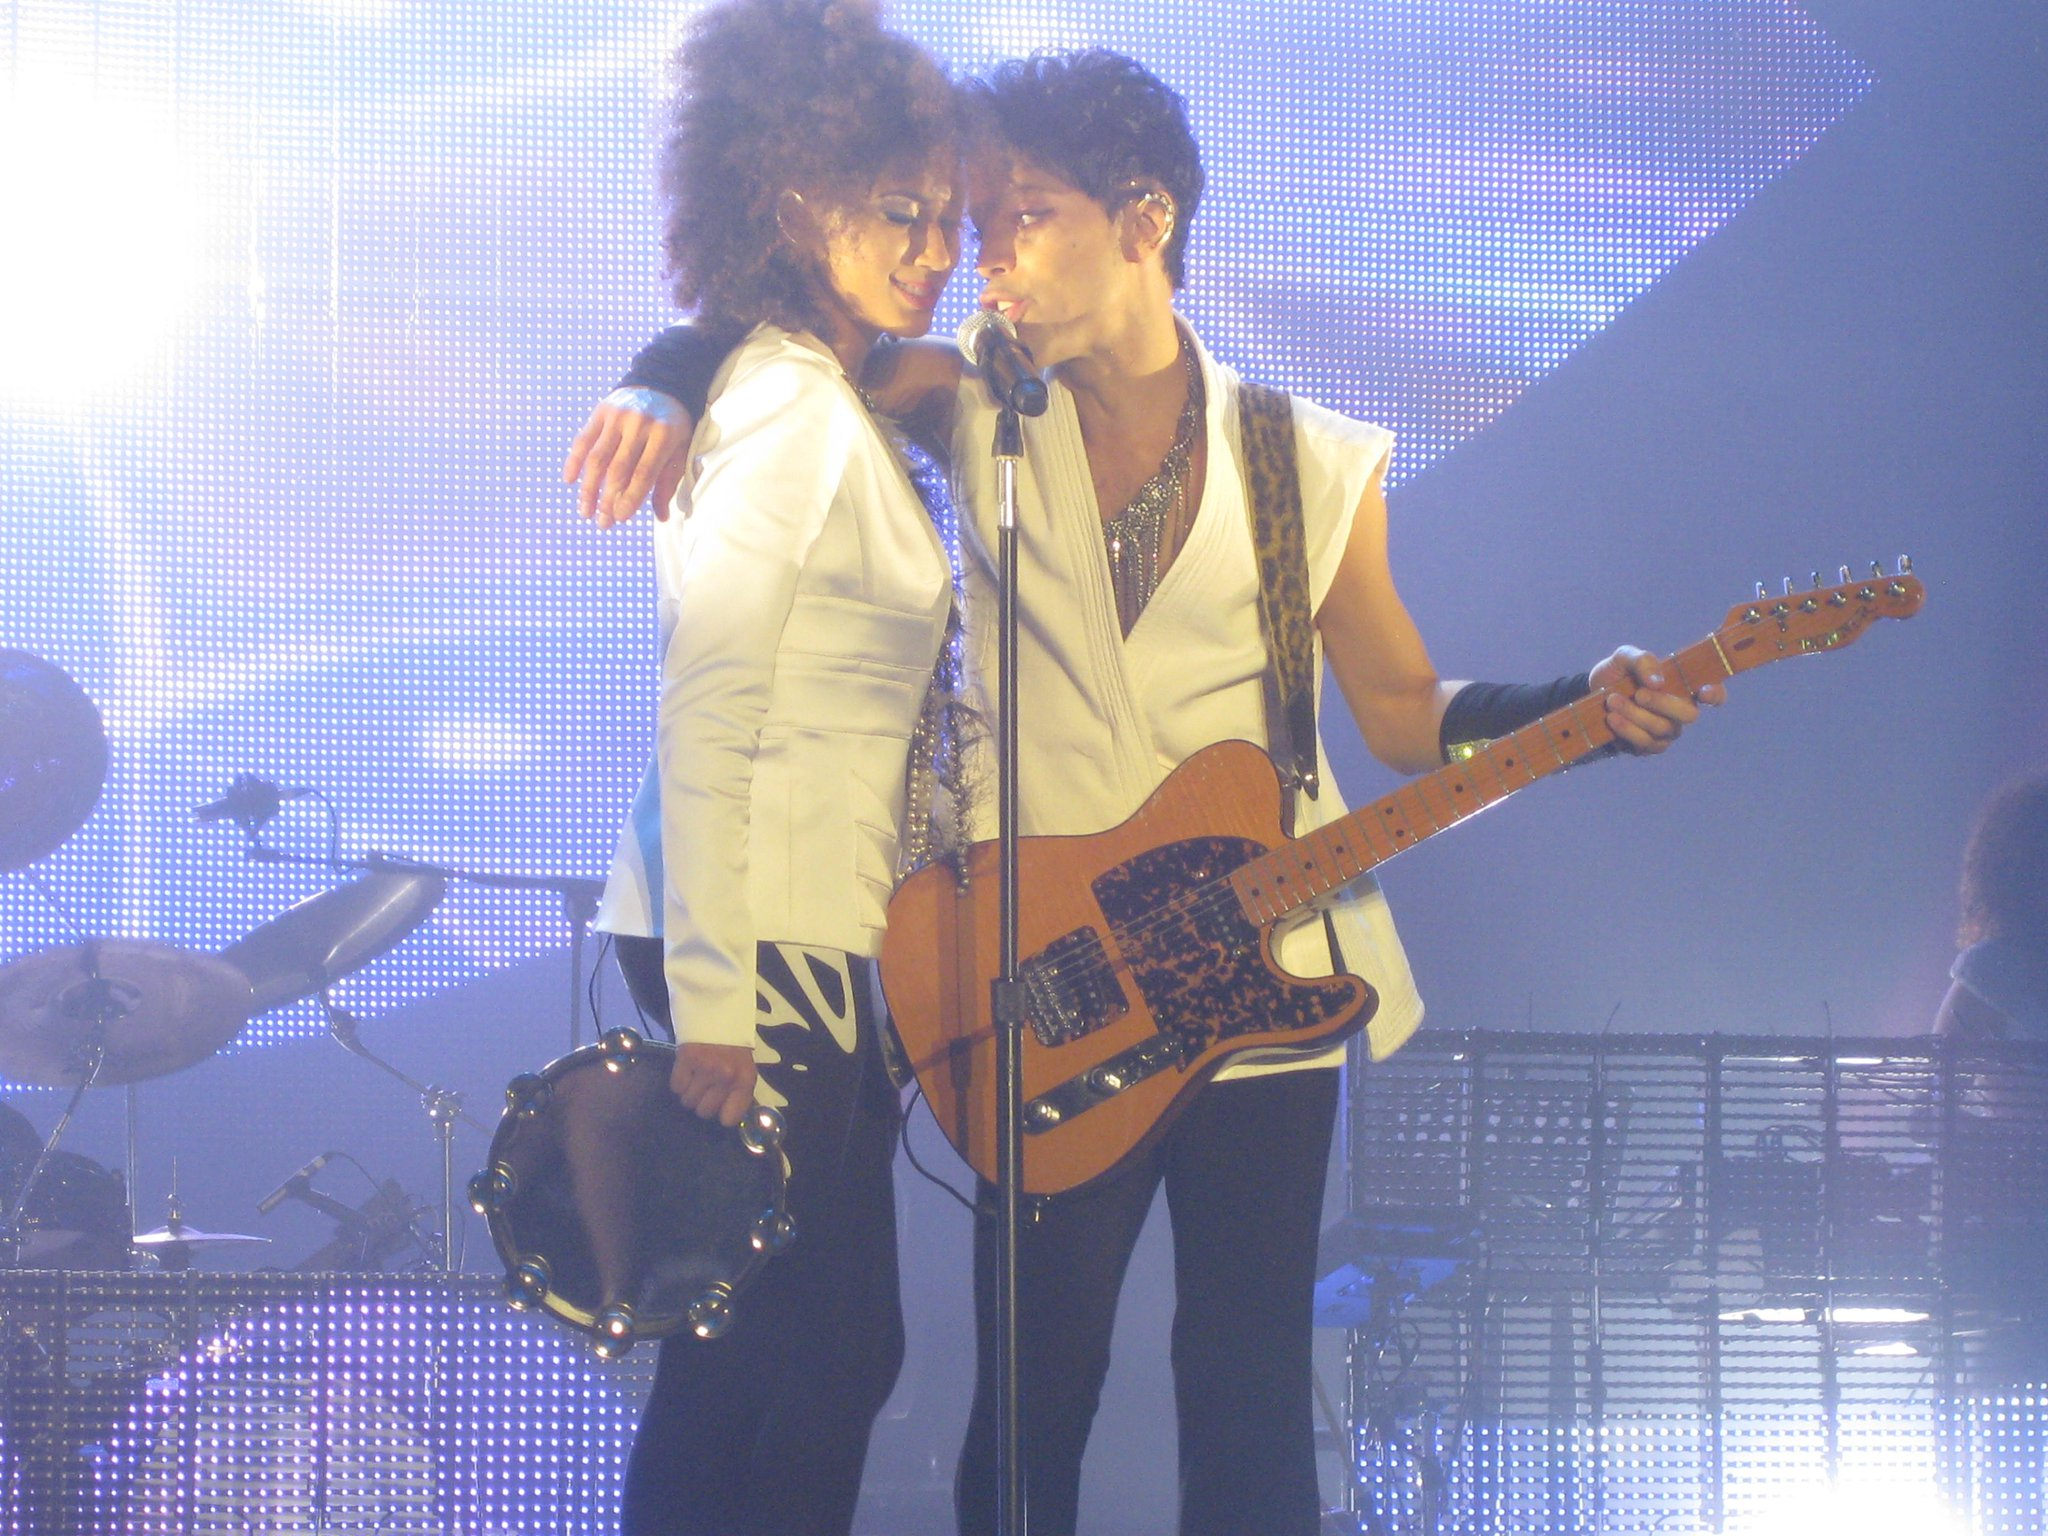 Andy Allo & Prince. Photo: Gerard van den IJssel